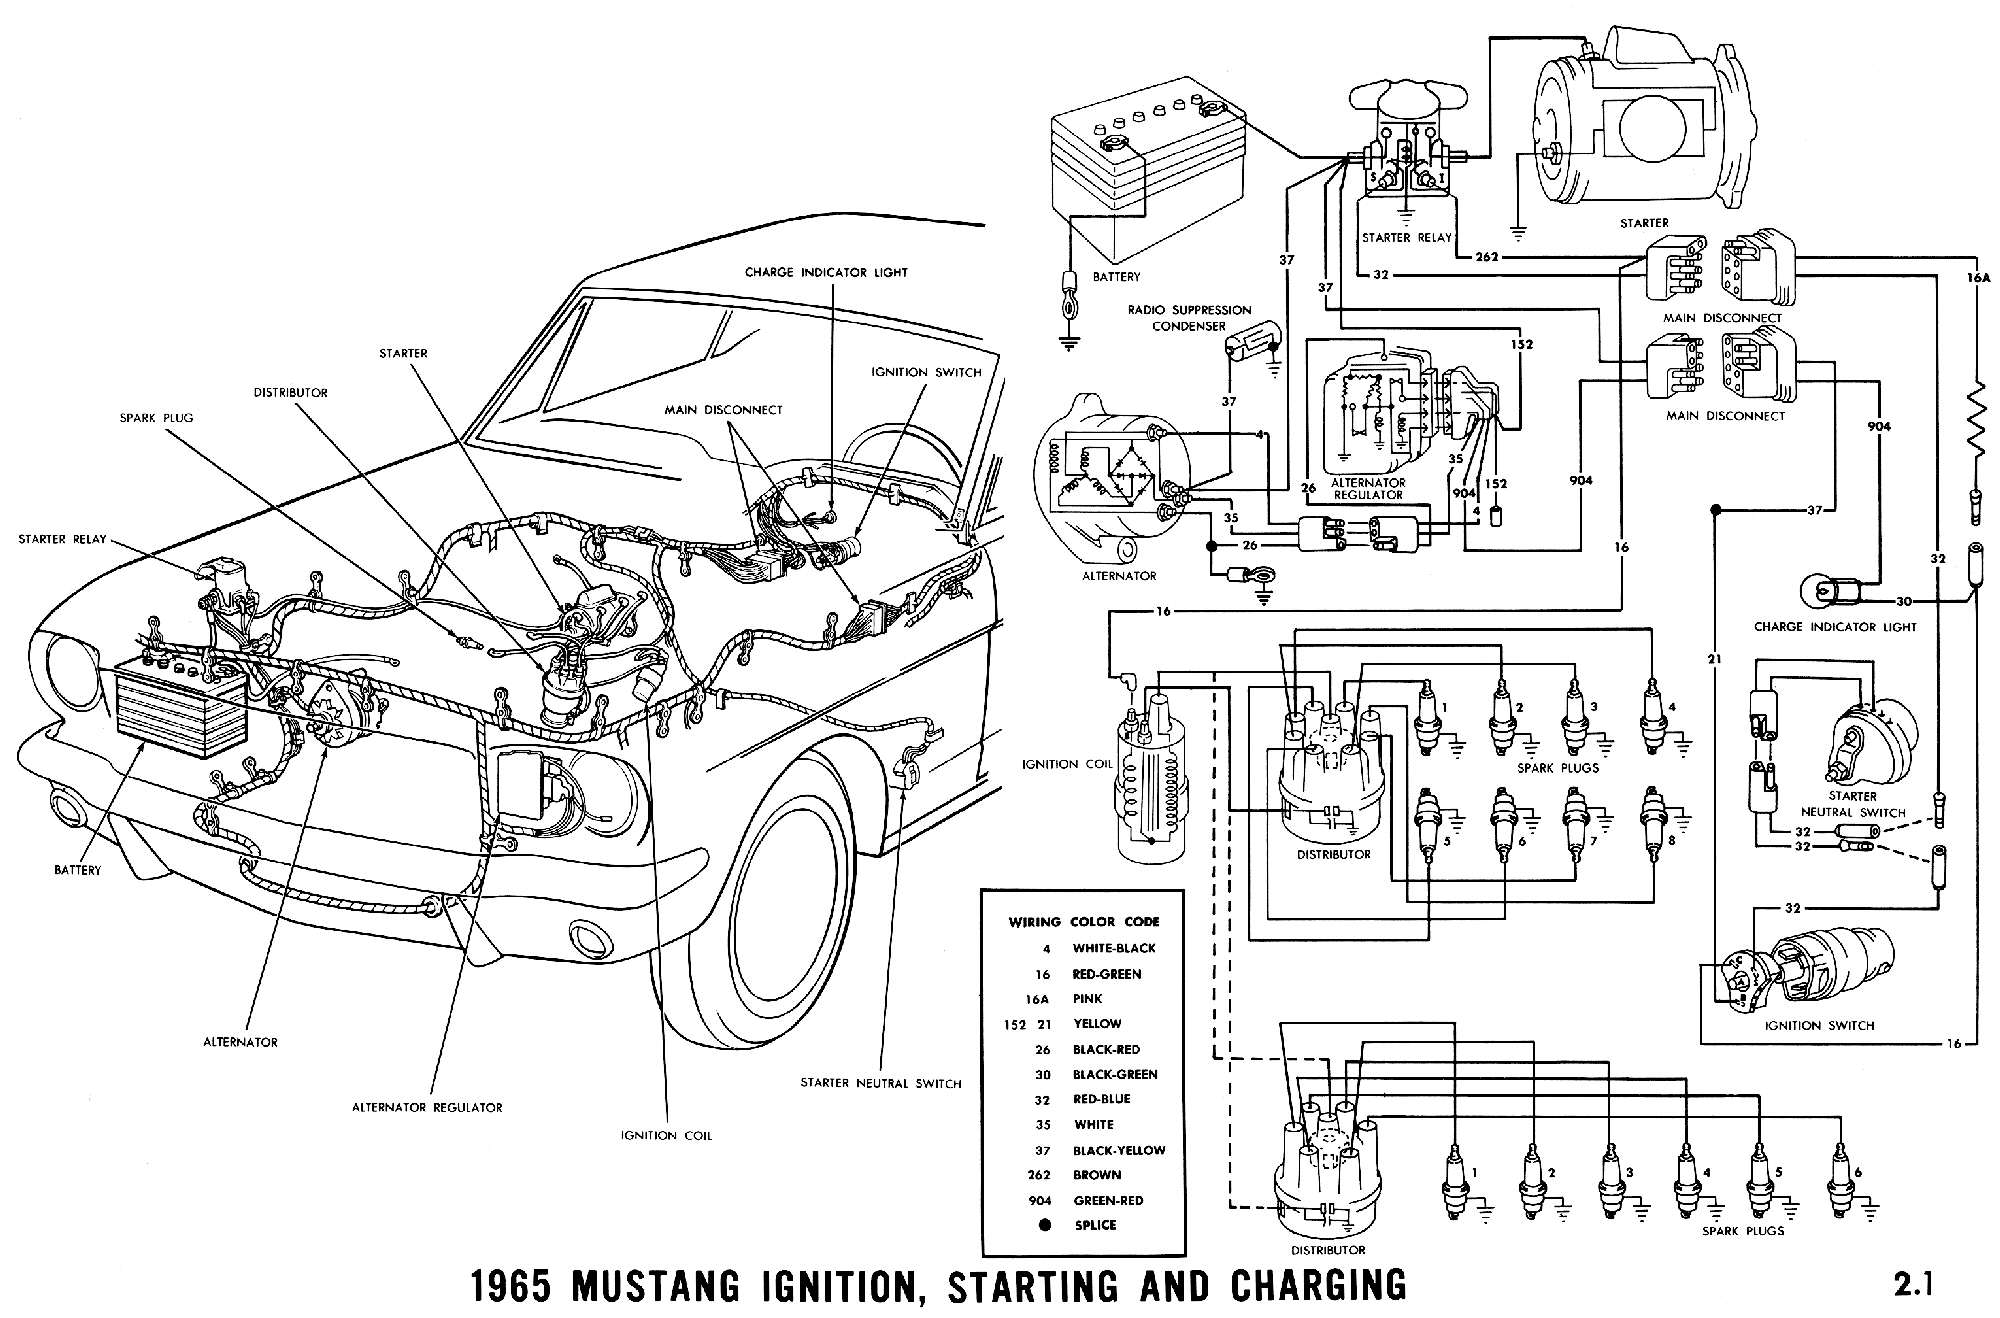 1965c 1965 mustang wiring diagrams average joe restoration 1965 ford mustang wiring diagrams at gsmx.co